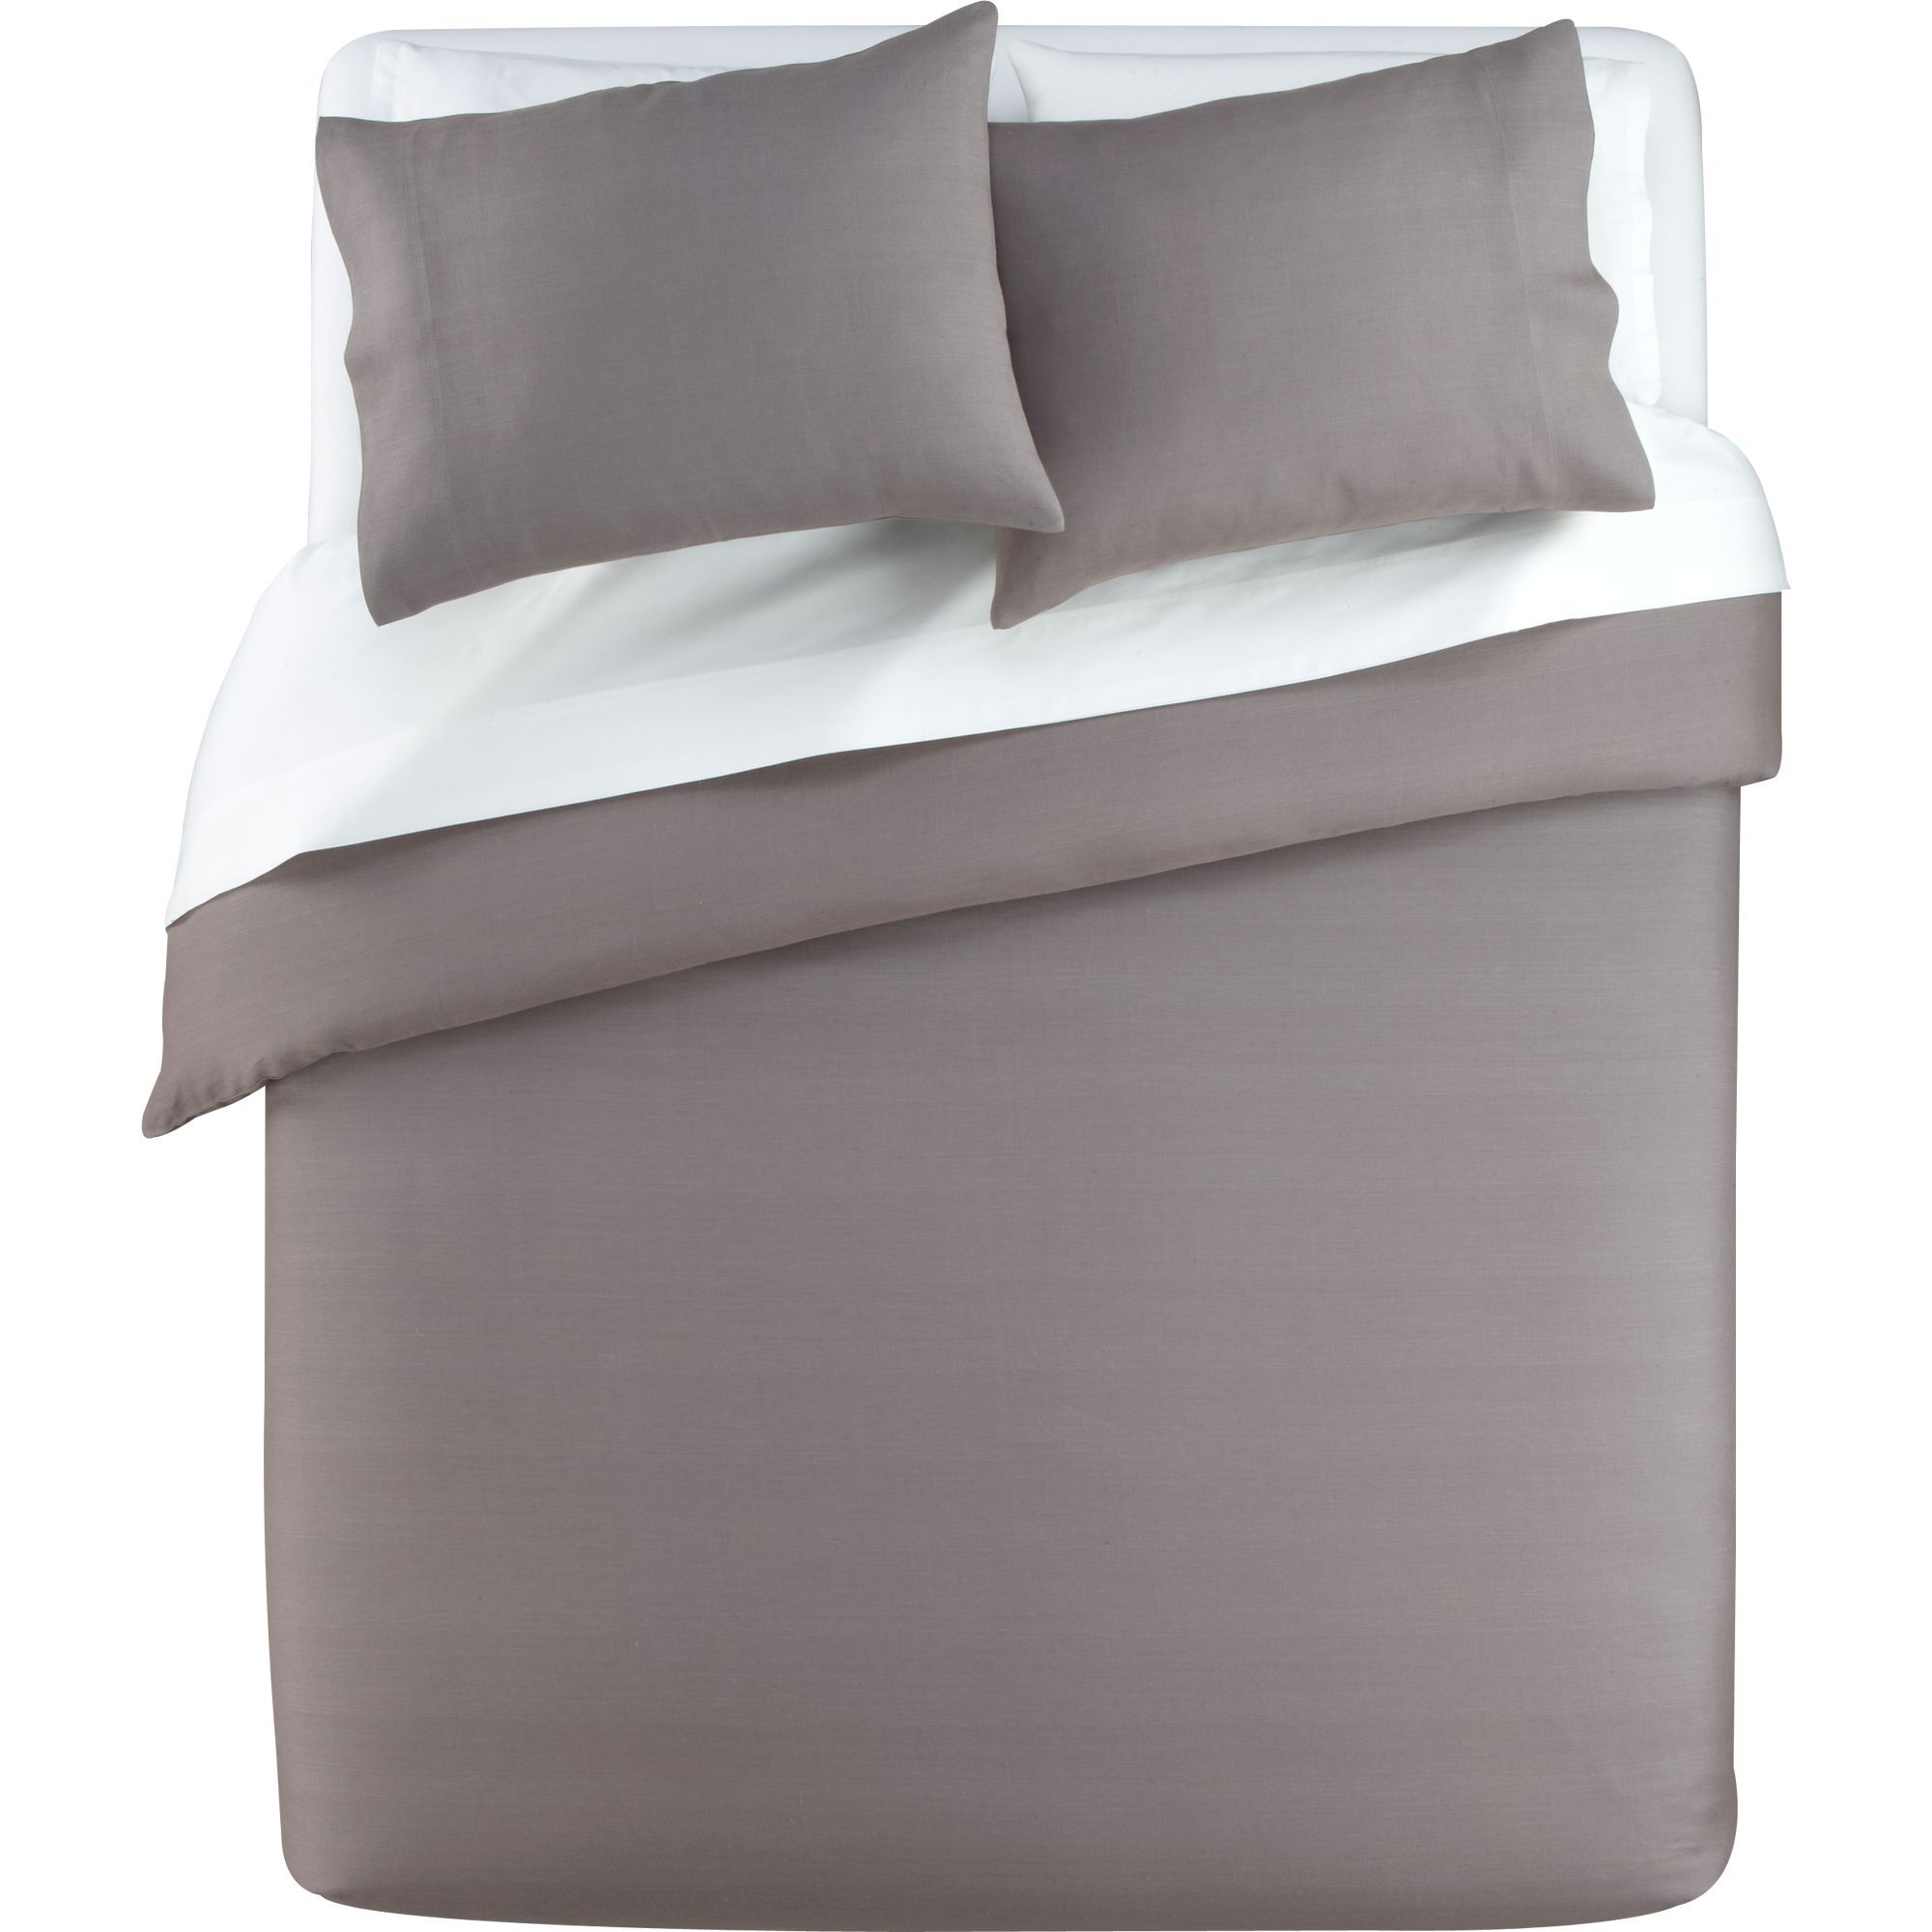 White bed top view - Varadero Bed Linens